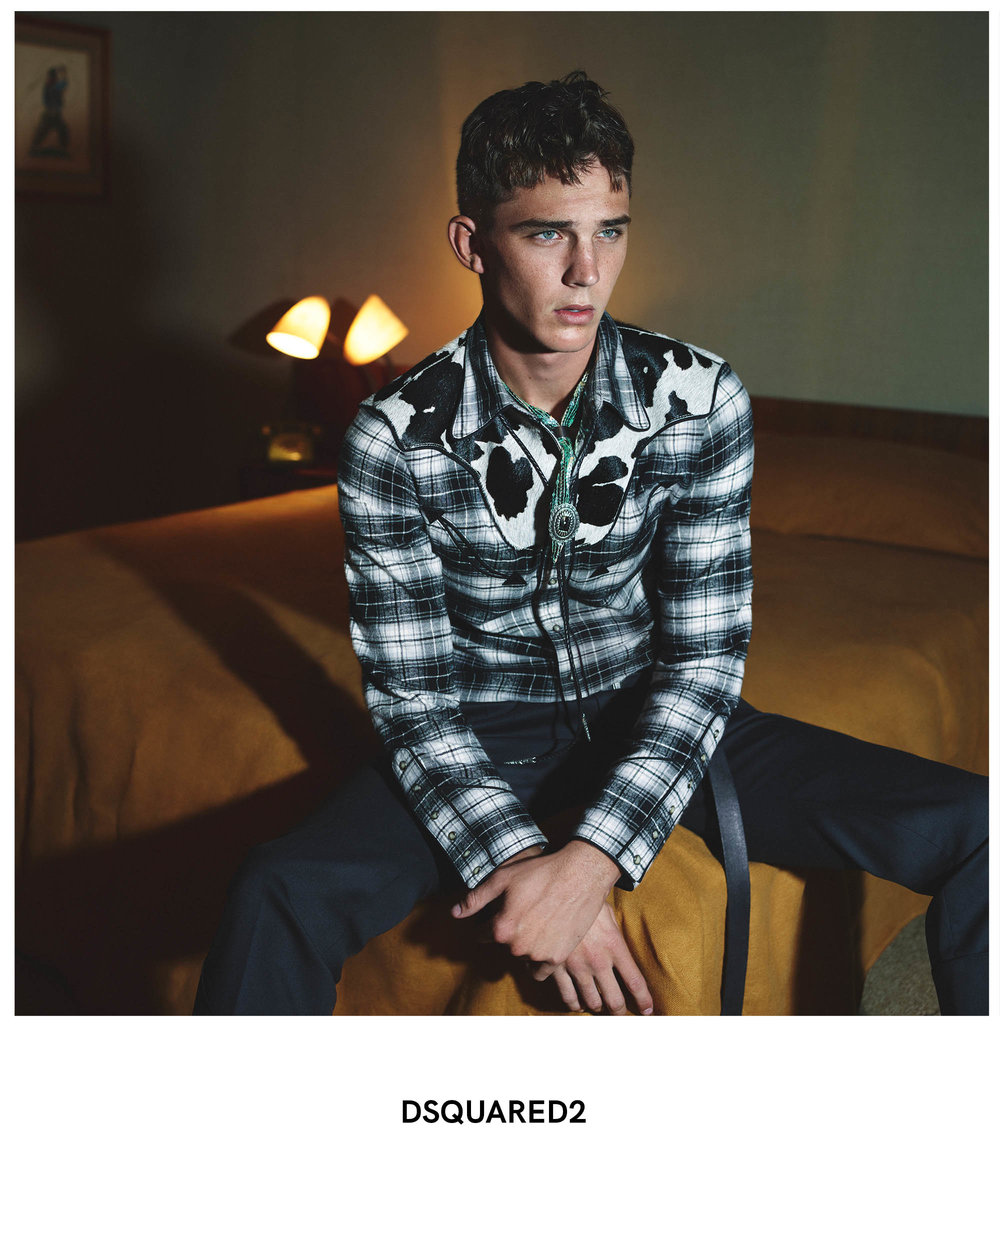 DSQUARED, 2018  by Mert & Marcus  Dreamer Postproductions